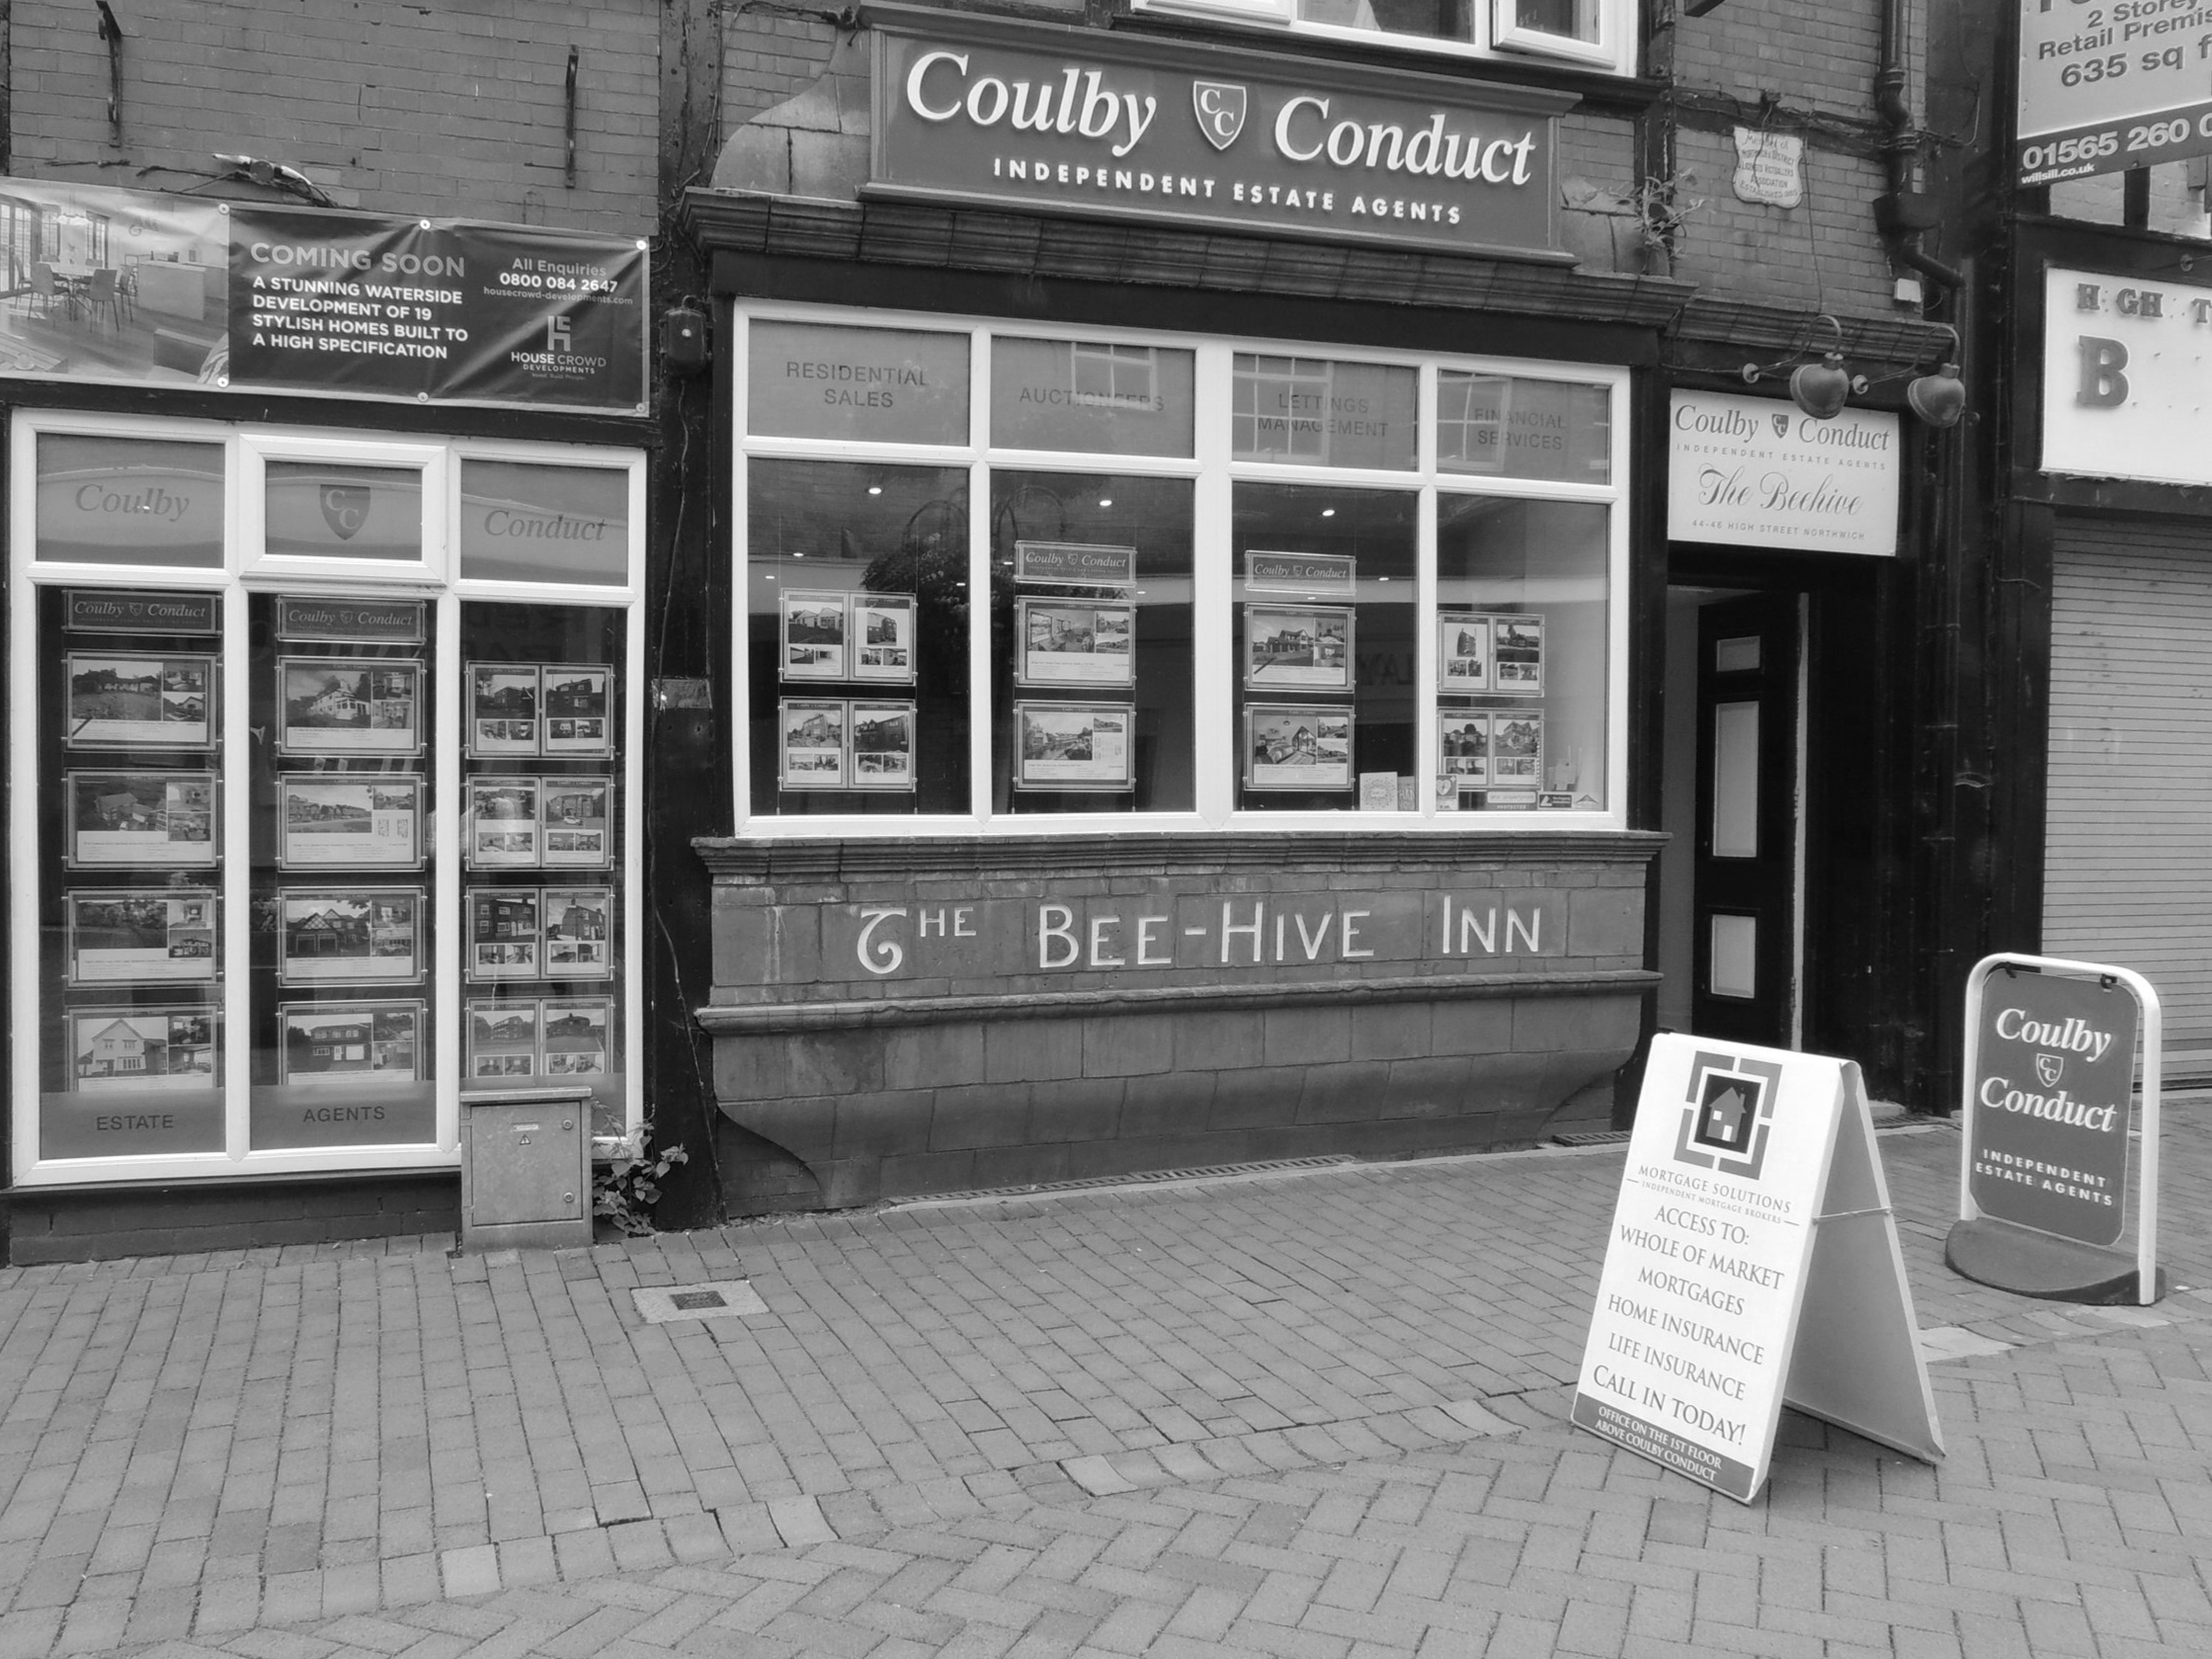 Northwich Office - 44/46 High StreetNorthwichCheshireCW9 5BEEmail: sales@coulbyconduct.co.ukPhone: 01606 352220